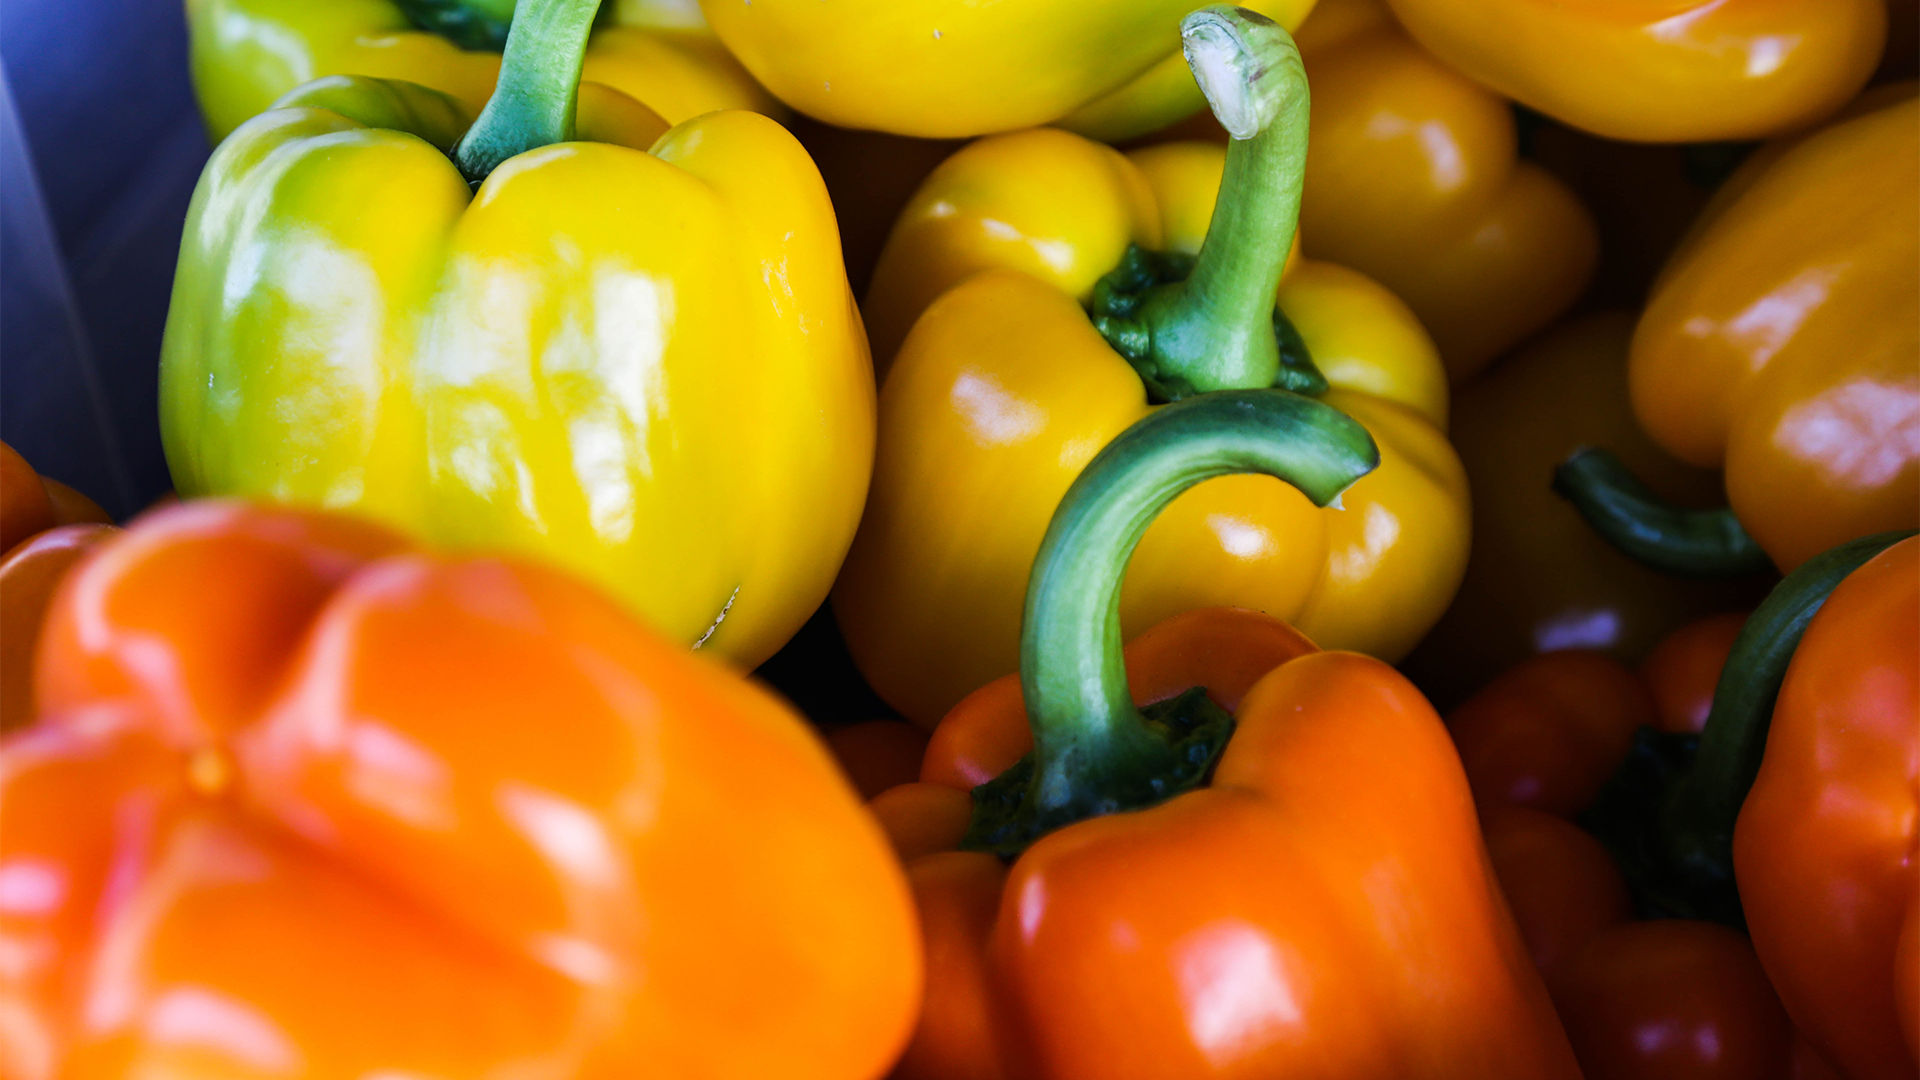 Warm Westerly Breezes - multi colored peppers